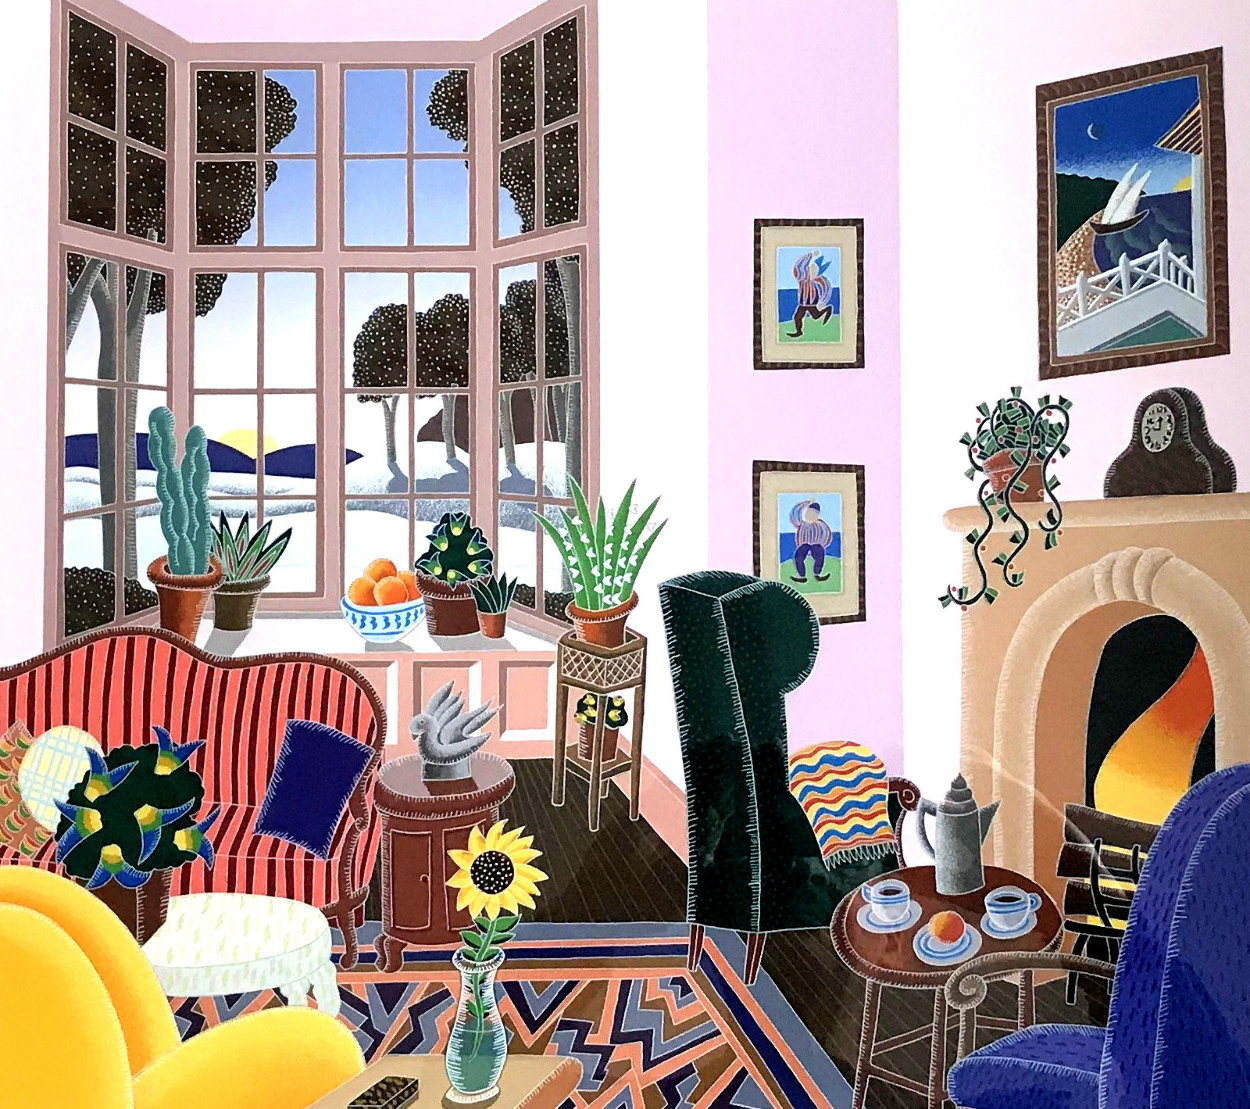 New England Revisited  Suite: Concord 1991 Limited Edition Print by Thomas Frederick McKnight